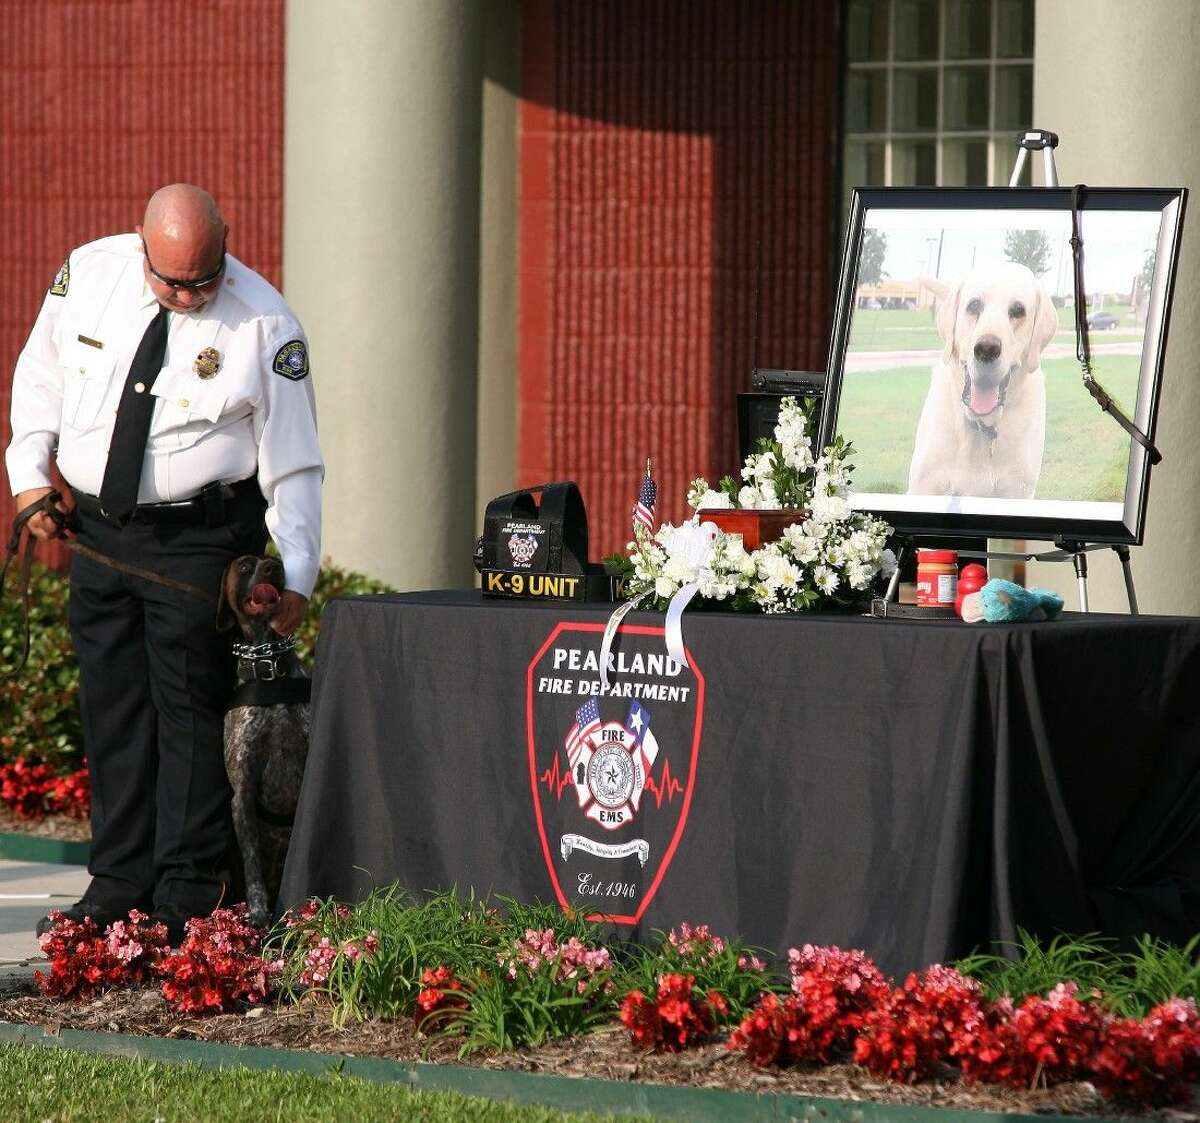 A Pasadena Deputy Fire Marshal and his K9 were one of several that stood at the memorial throughout the service.